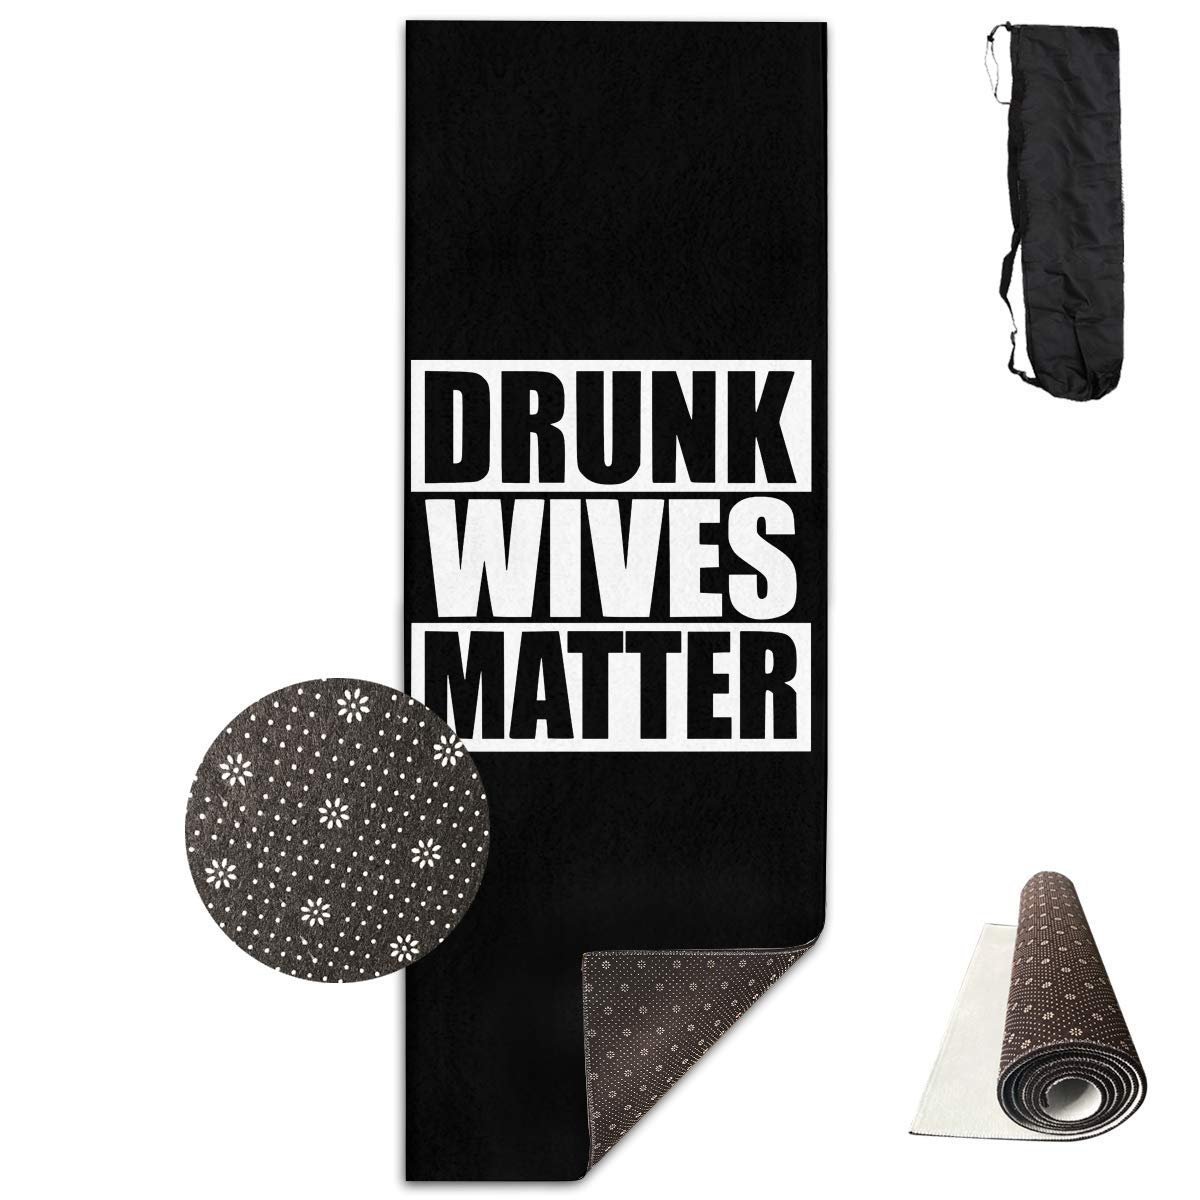 Amazon.com: Workout Mat for Yoga, Drunk Wives Matter Yoga ...